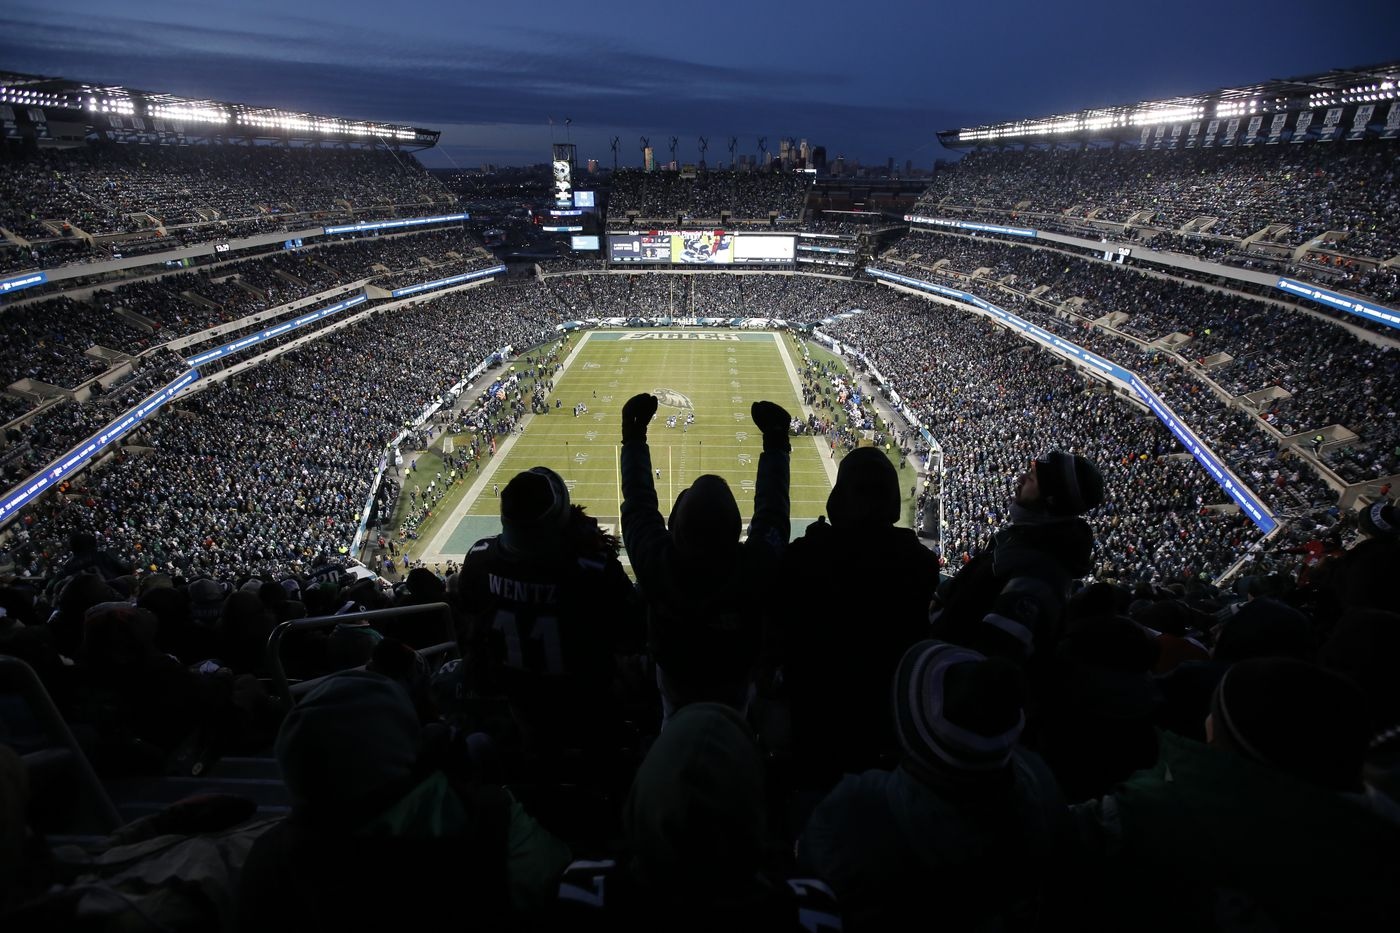 Temple Football's biggest problem: The rent at the Linc is too high | Opinion